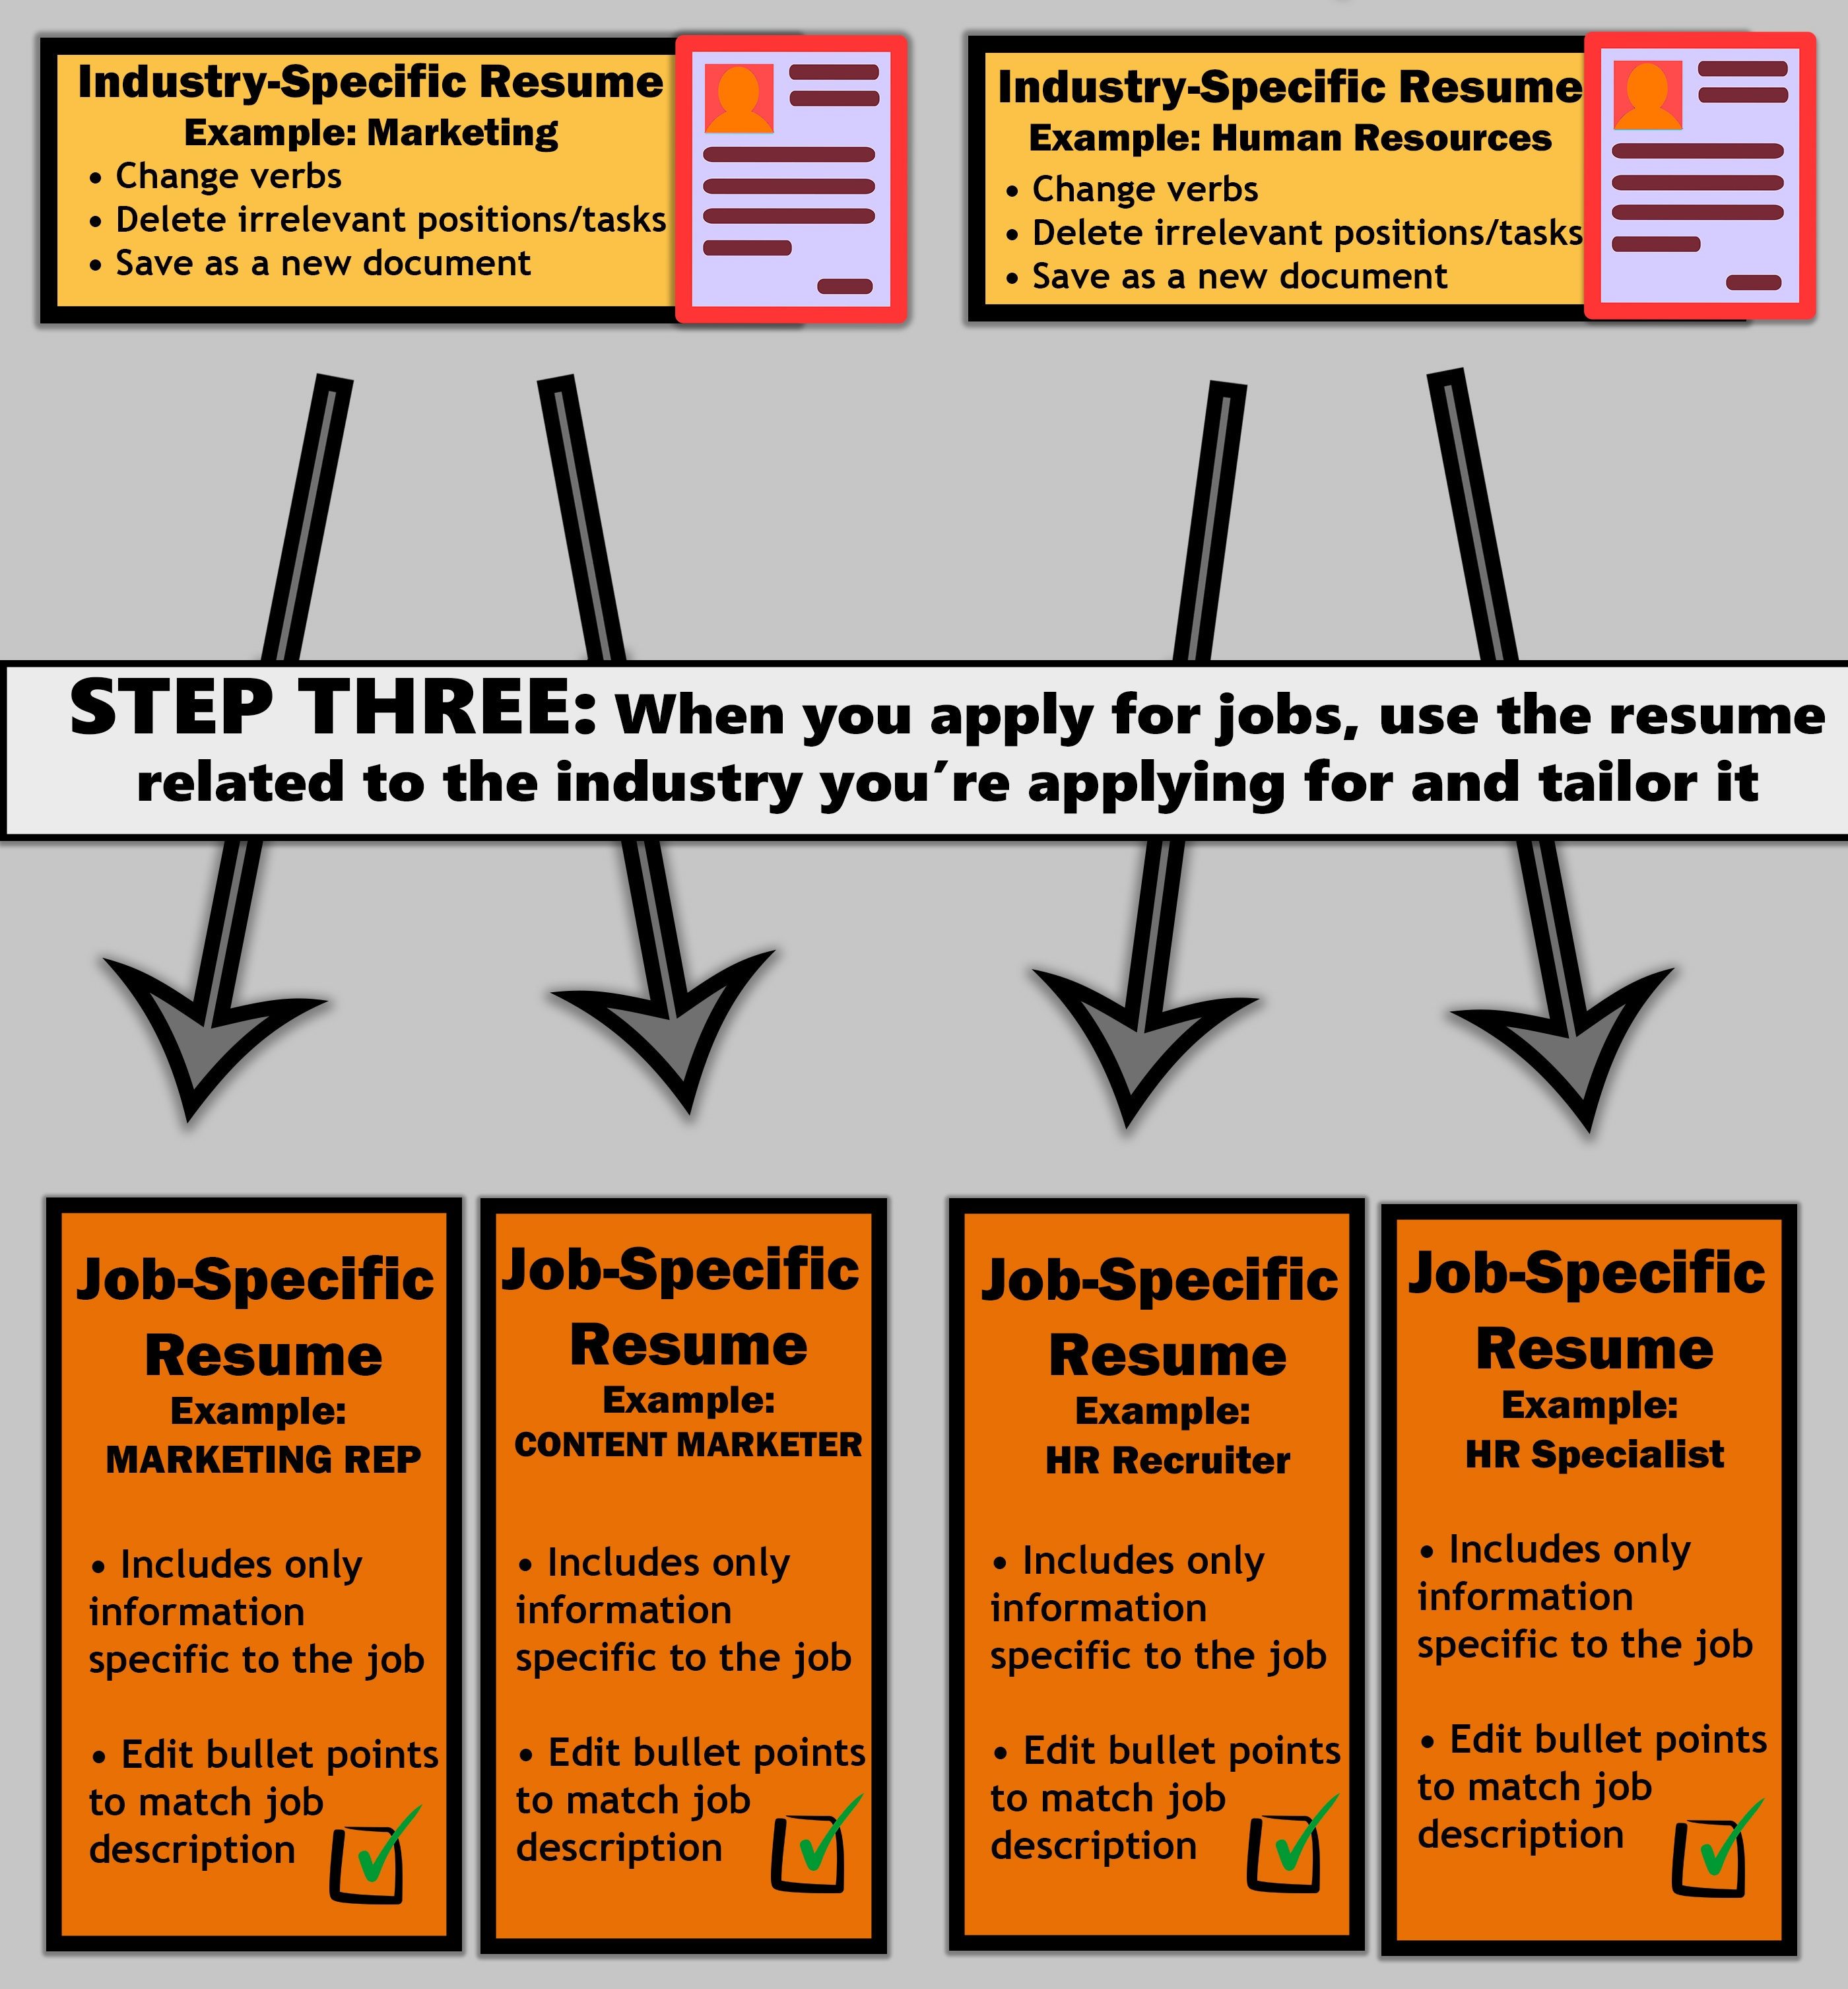 tailored resume infographic- step 3